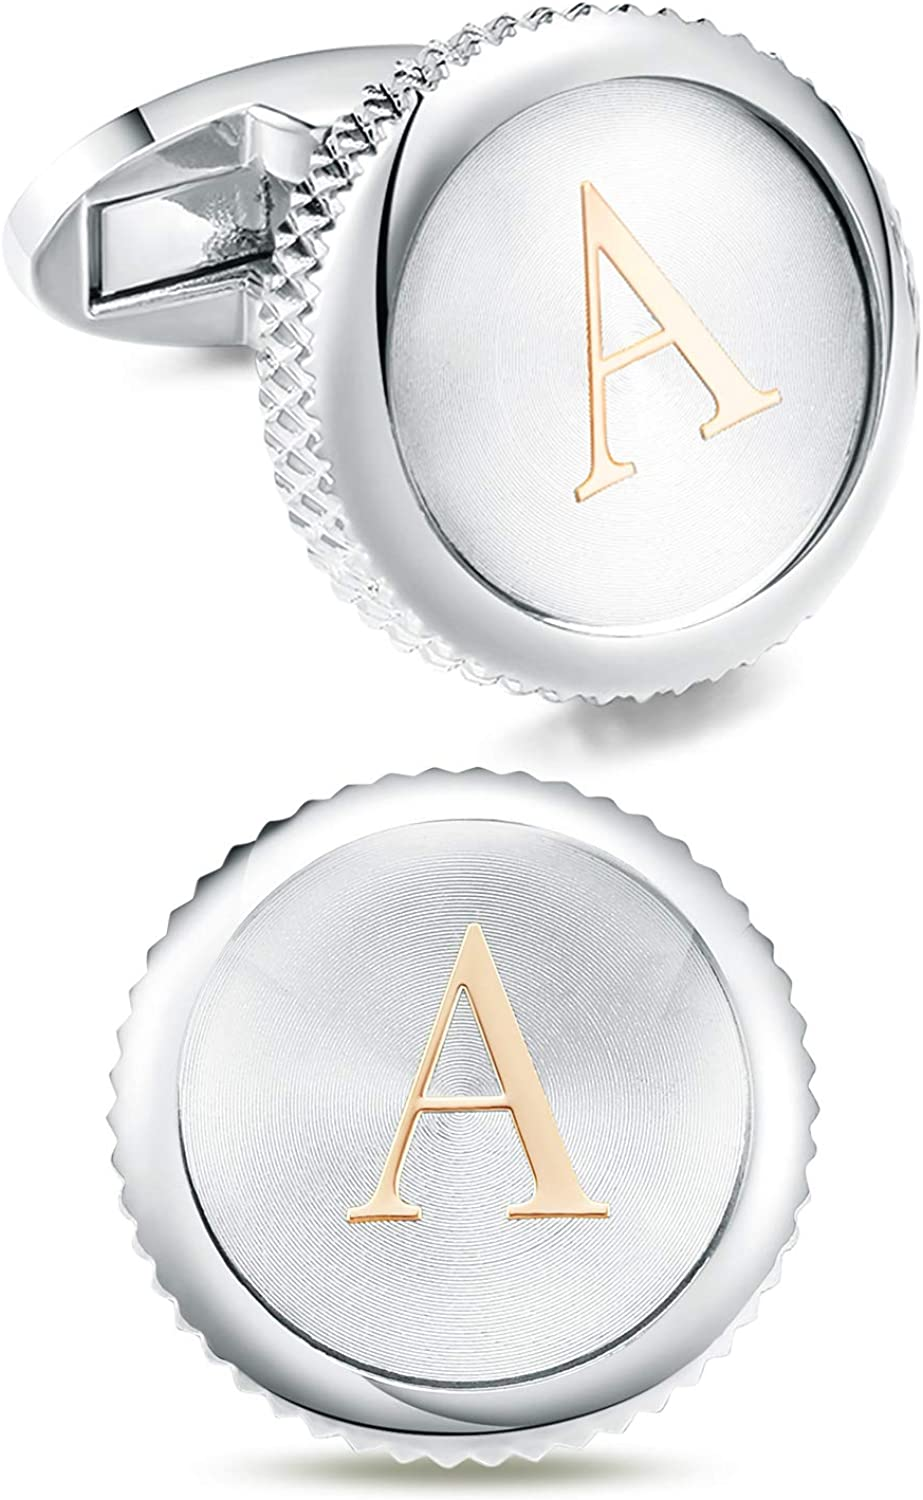 Cat Eye Jewels Gold Tone Classic Alphabet Initial A M Round Silver Mens Cufflinks for Men Groom Tuxedo Formal Shirts Business Wedding Birthday Gifts Box